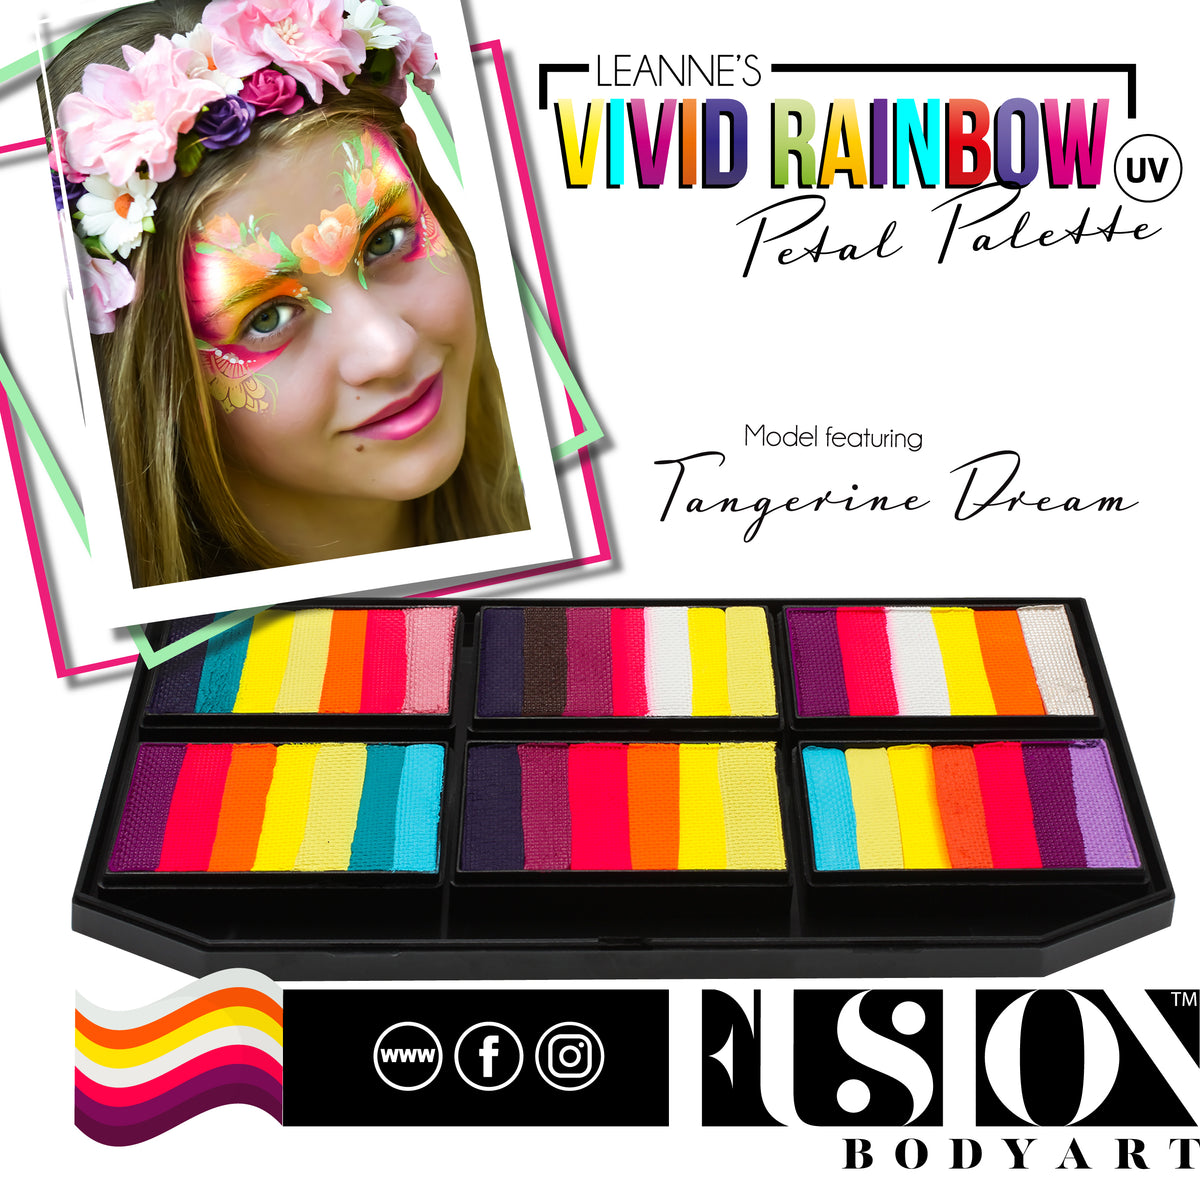 FUSION LEANNE'S COLLECTION - Vivid Rainbow Petal Palette fx